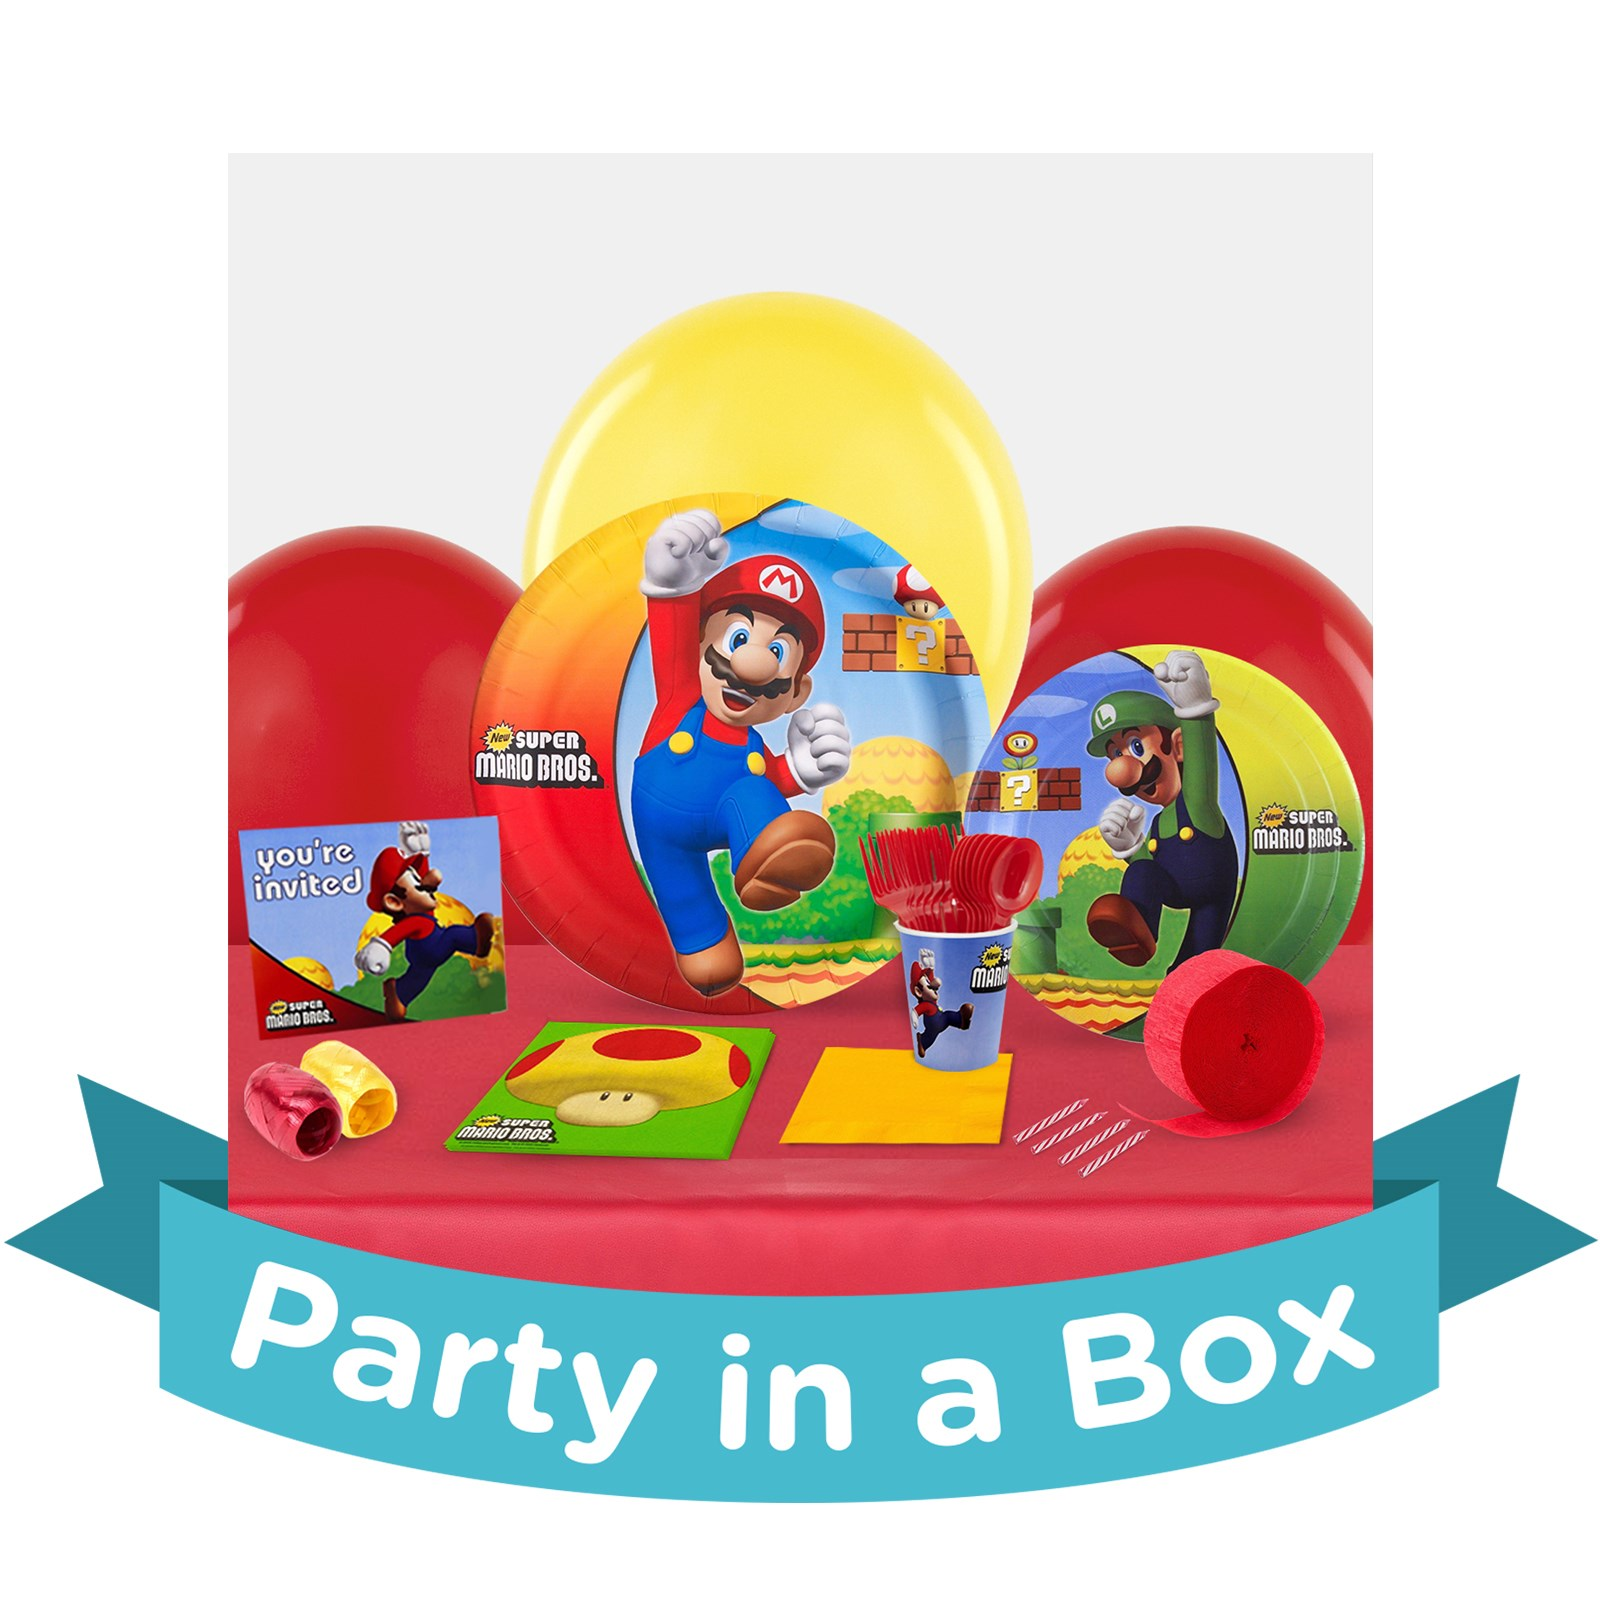 Super Mario Bros. Party in a Box - Deluxe with Favors - 8 Guests